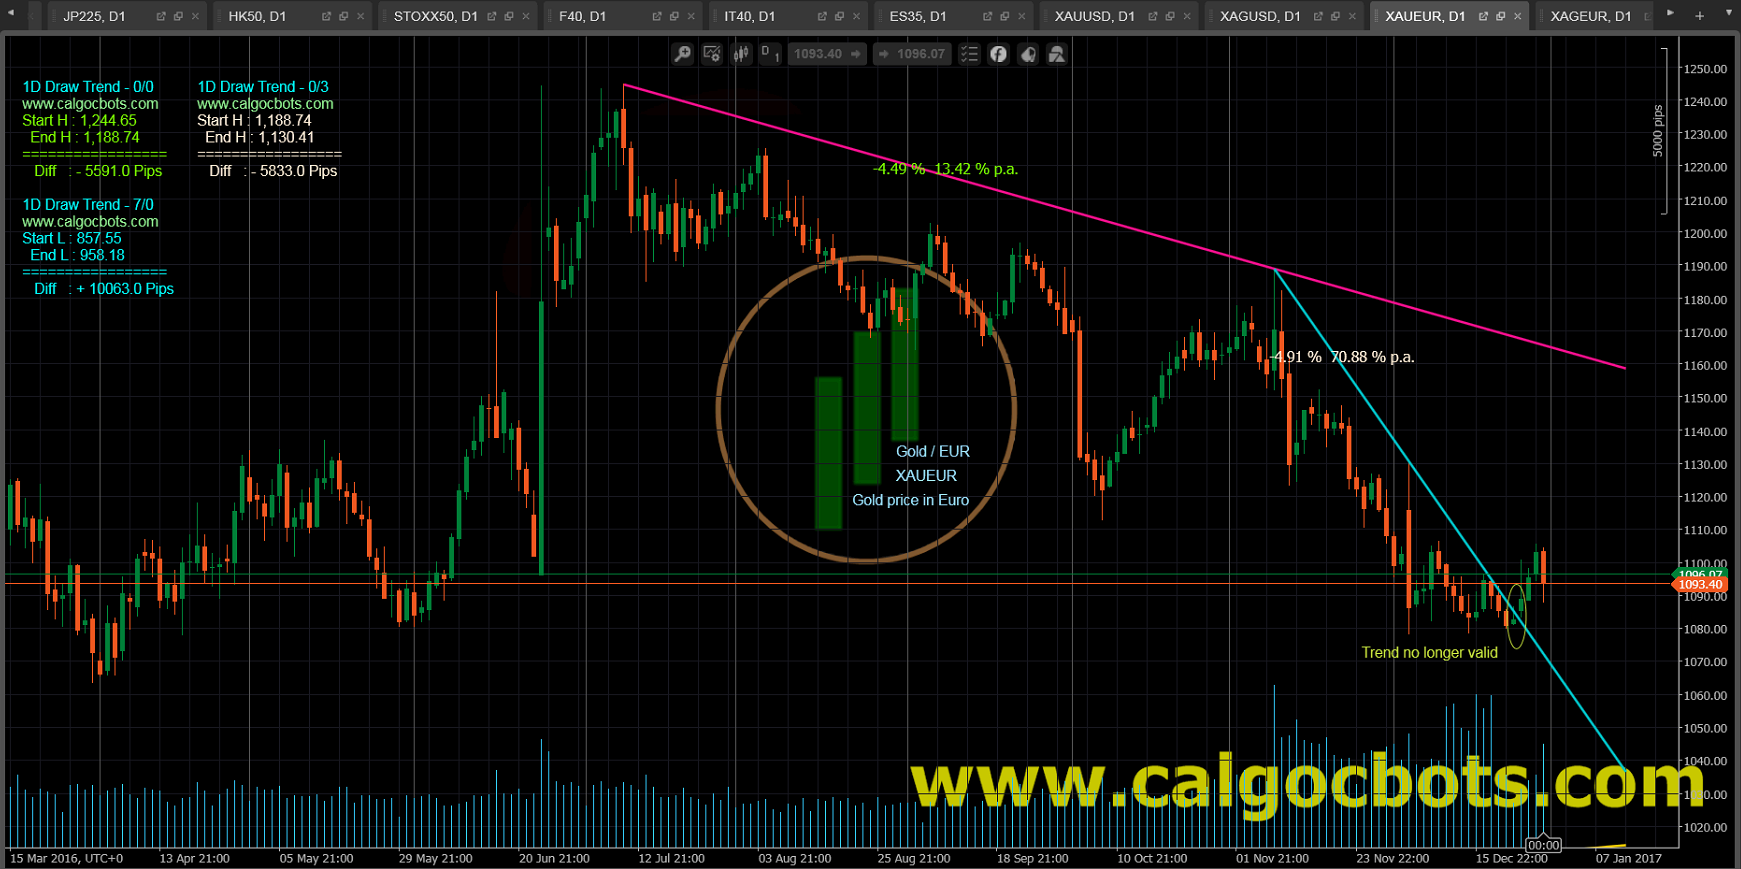 1D Draw Trend - cAlgo and cTrader Indicator - Gold EUR Spot - XAUEUR Daily Chart - 004